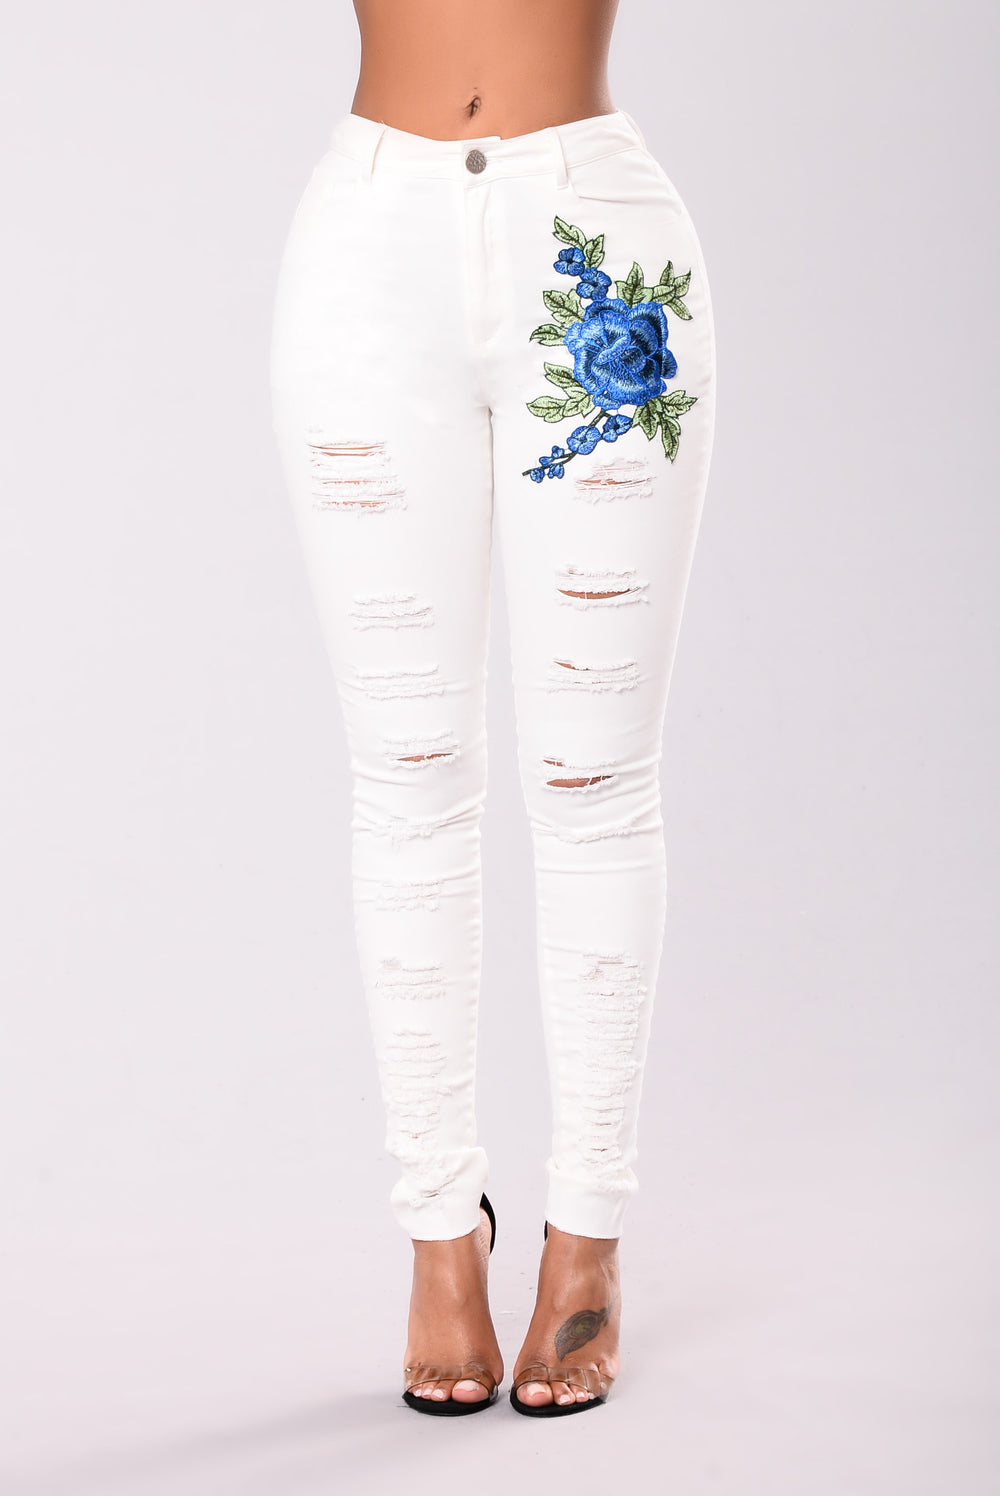 How It Begun Jeans - White/Blue